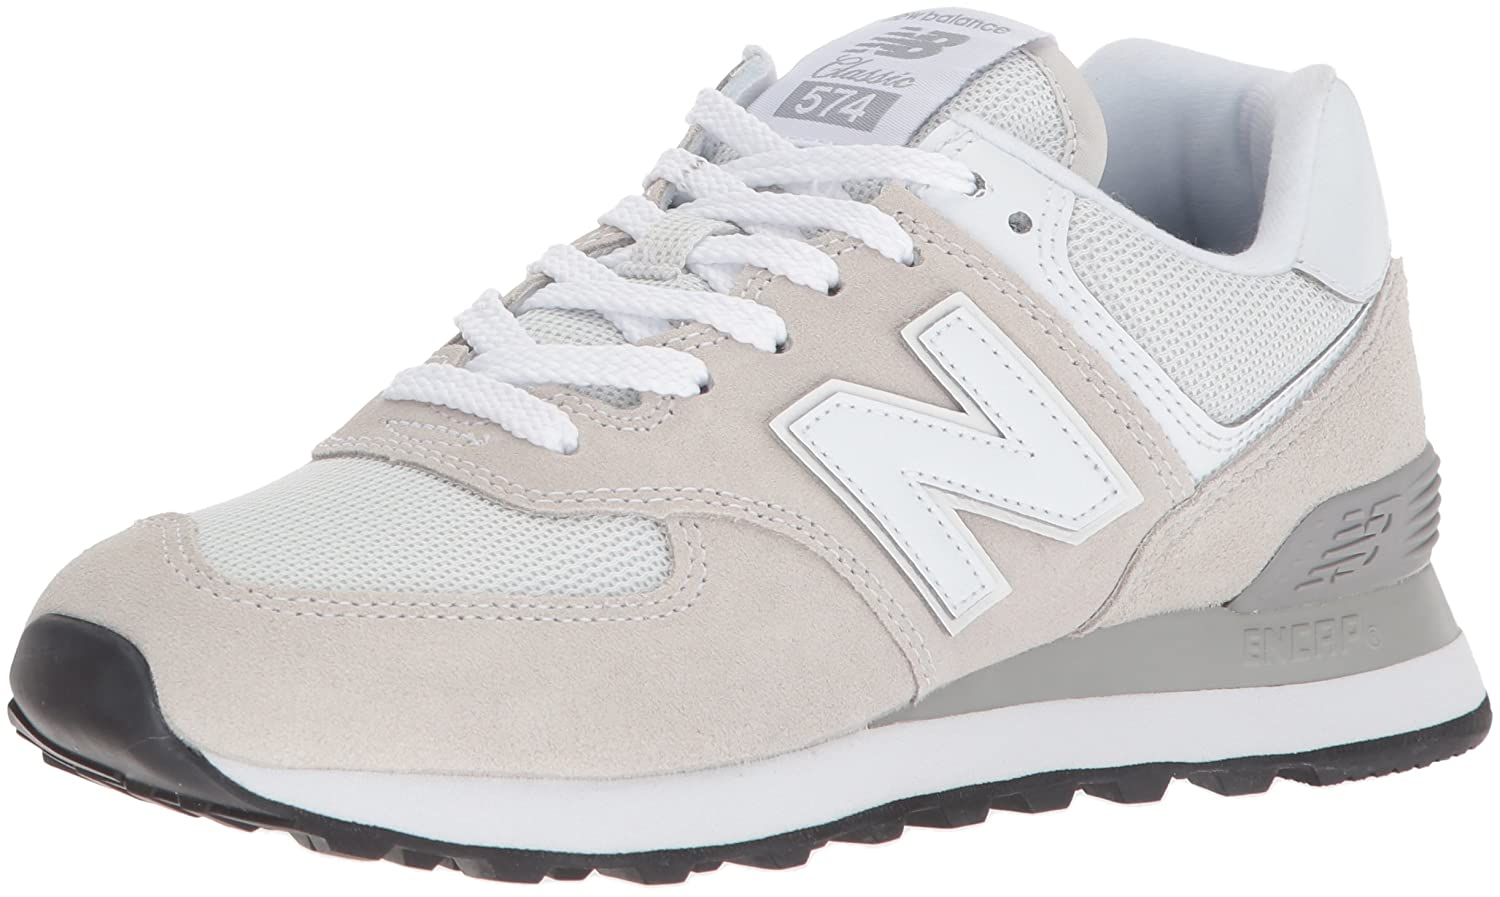 New Balance Women's Iconic 574 Sneaker B0725YG2VN 5.5 D US|White